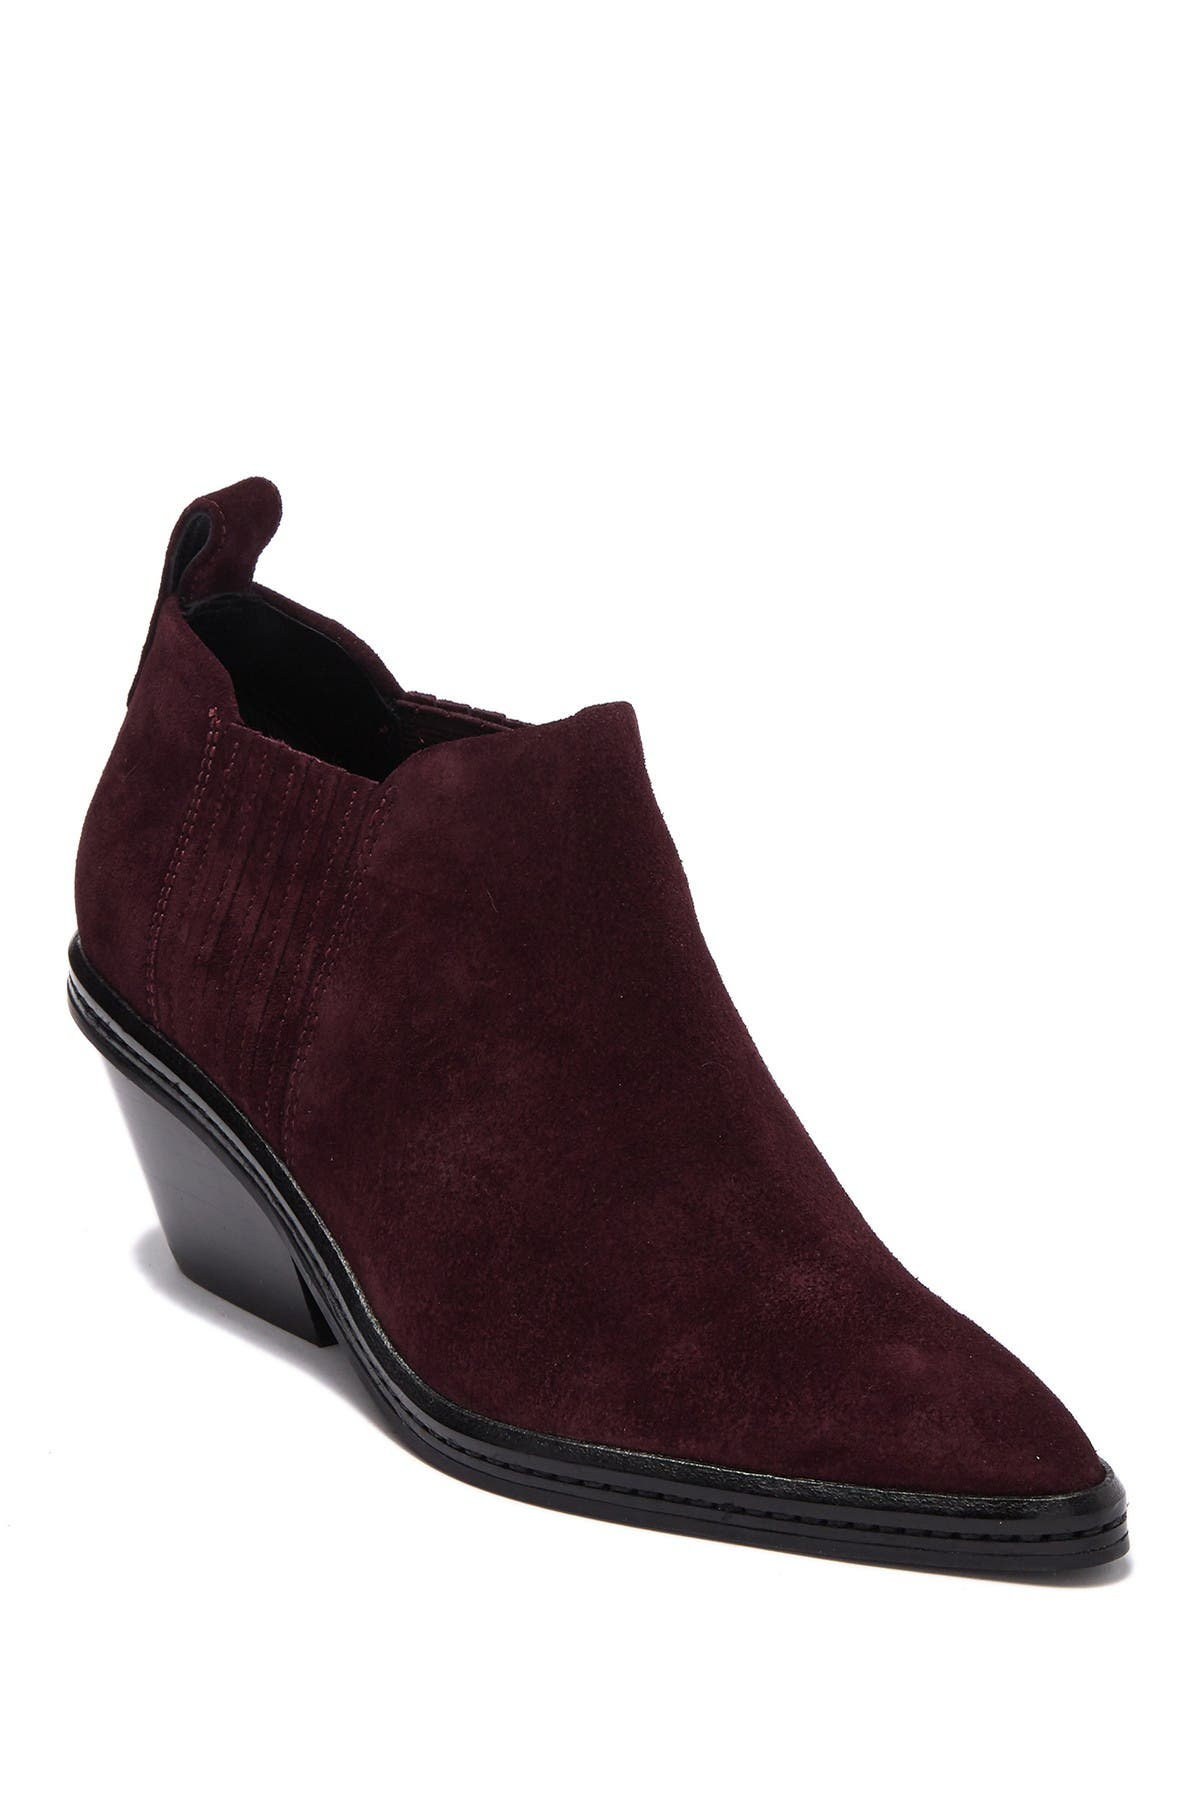 Image of Via Spiga Farly Suede Pointy Toe Bootie